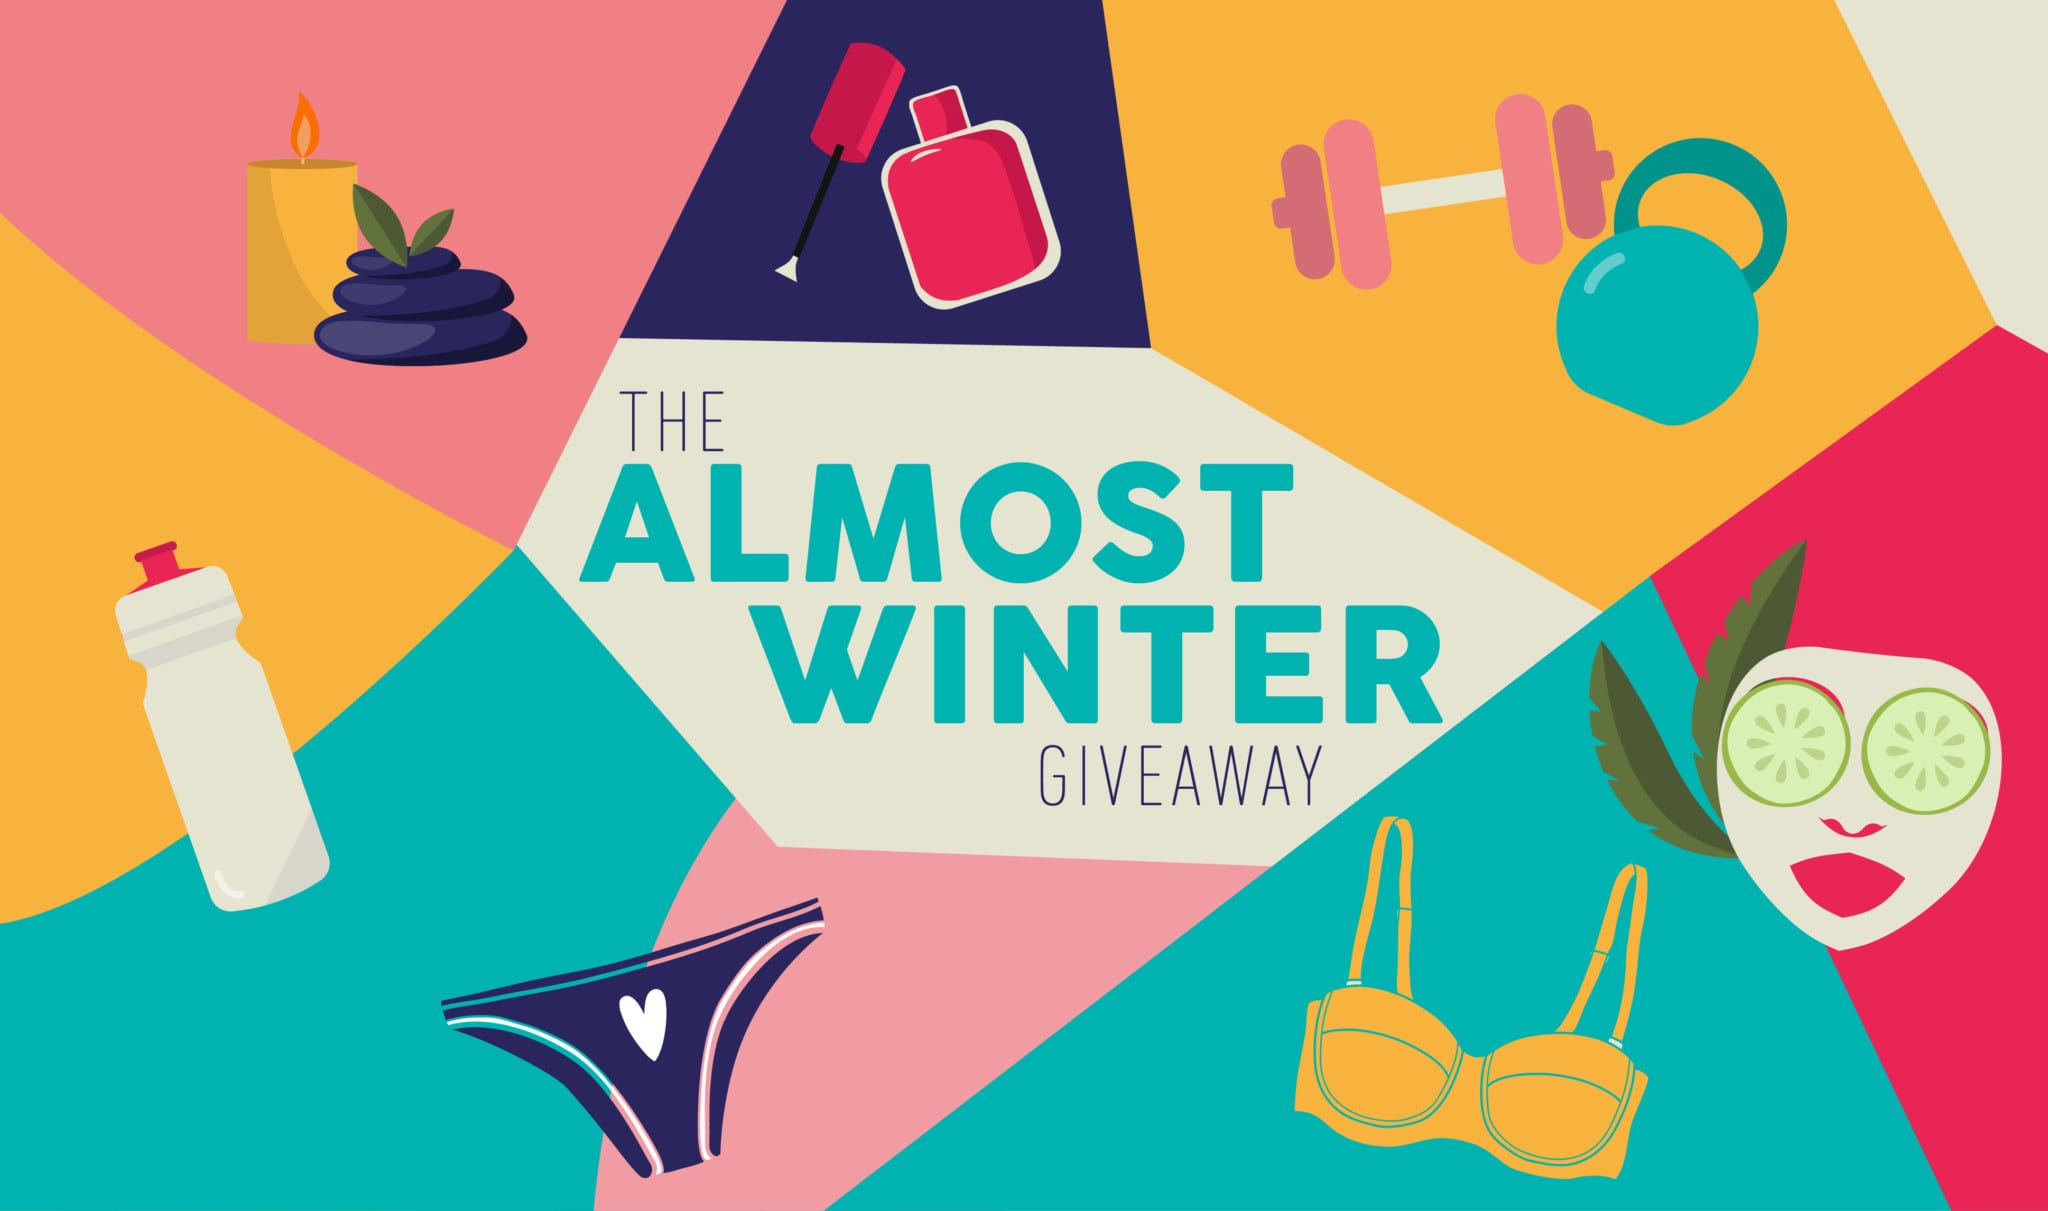 The Almost Winter Giveaway: Win one of three prizes